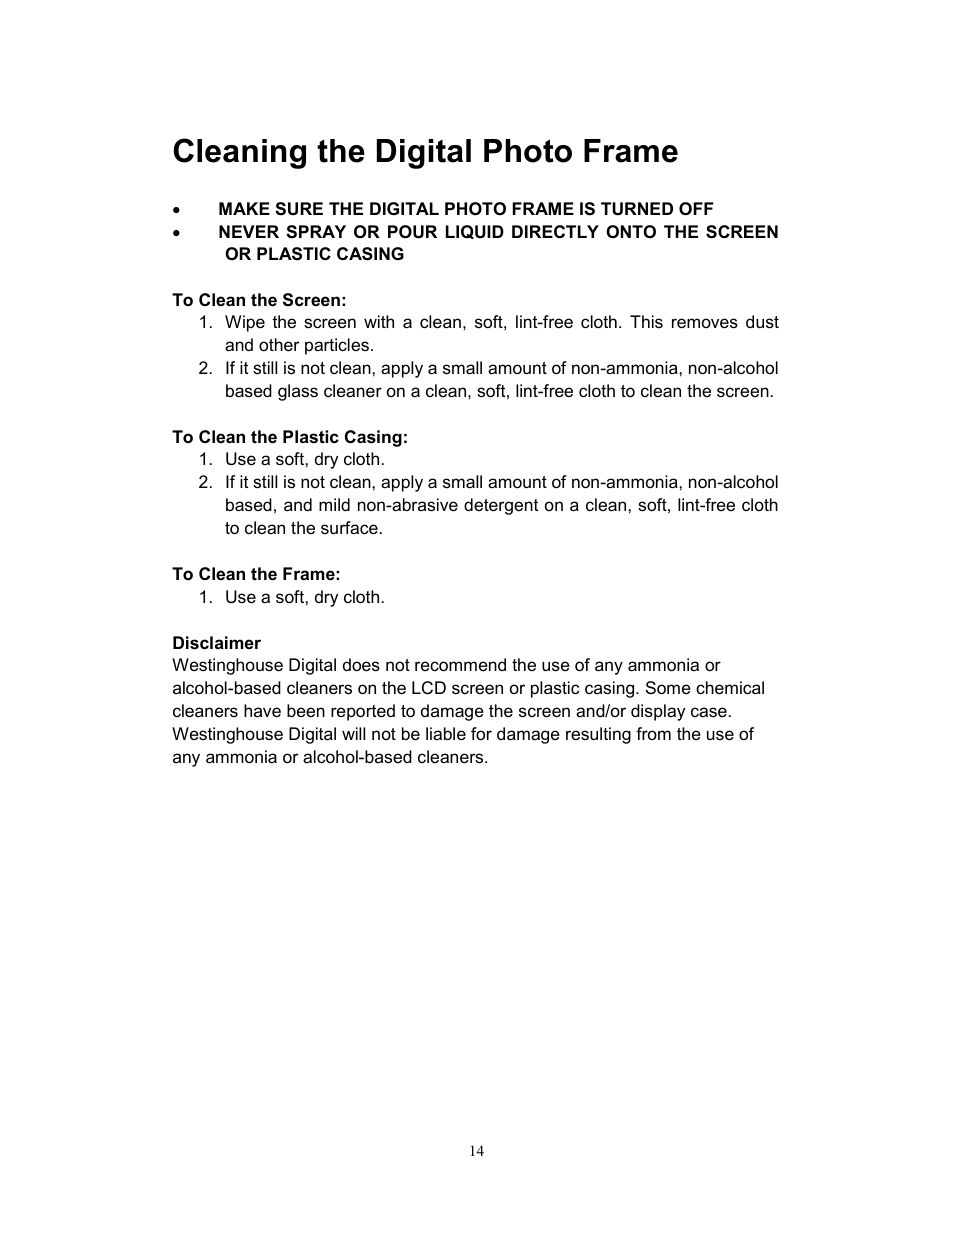 Cleaning the digital photo frame | Westinghouse DPF-0702 User Manual ...